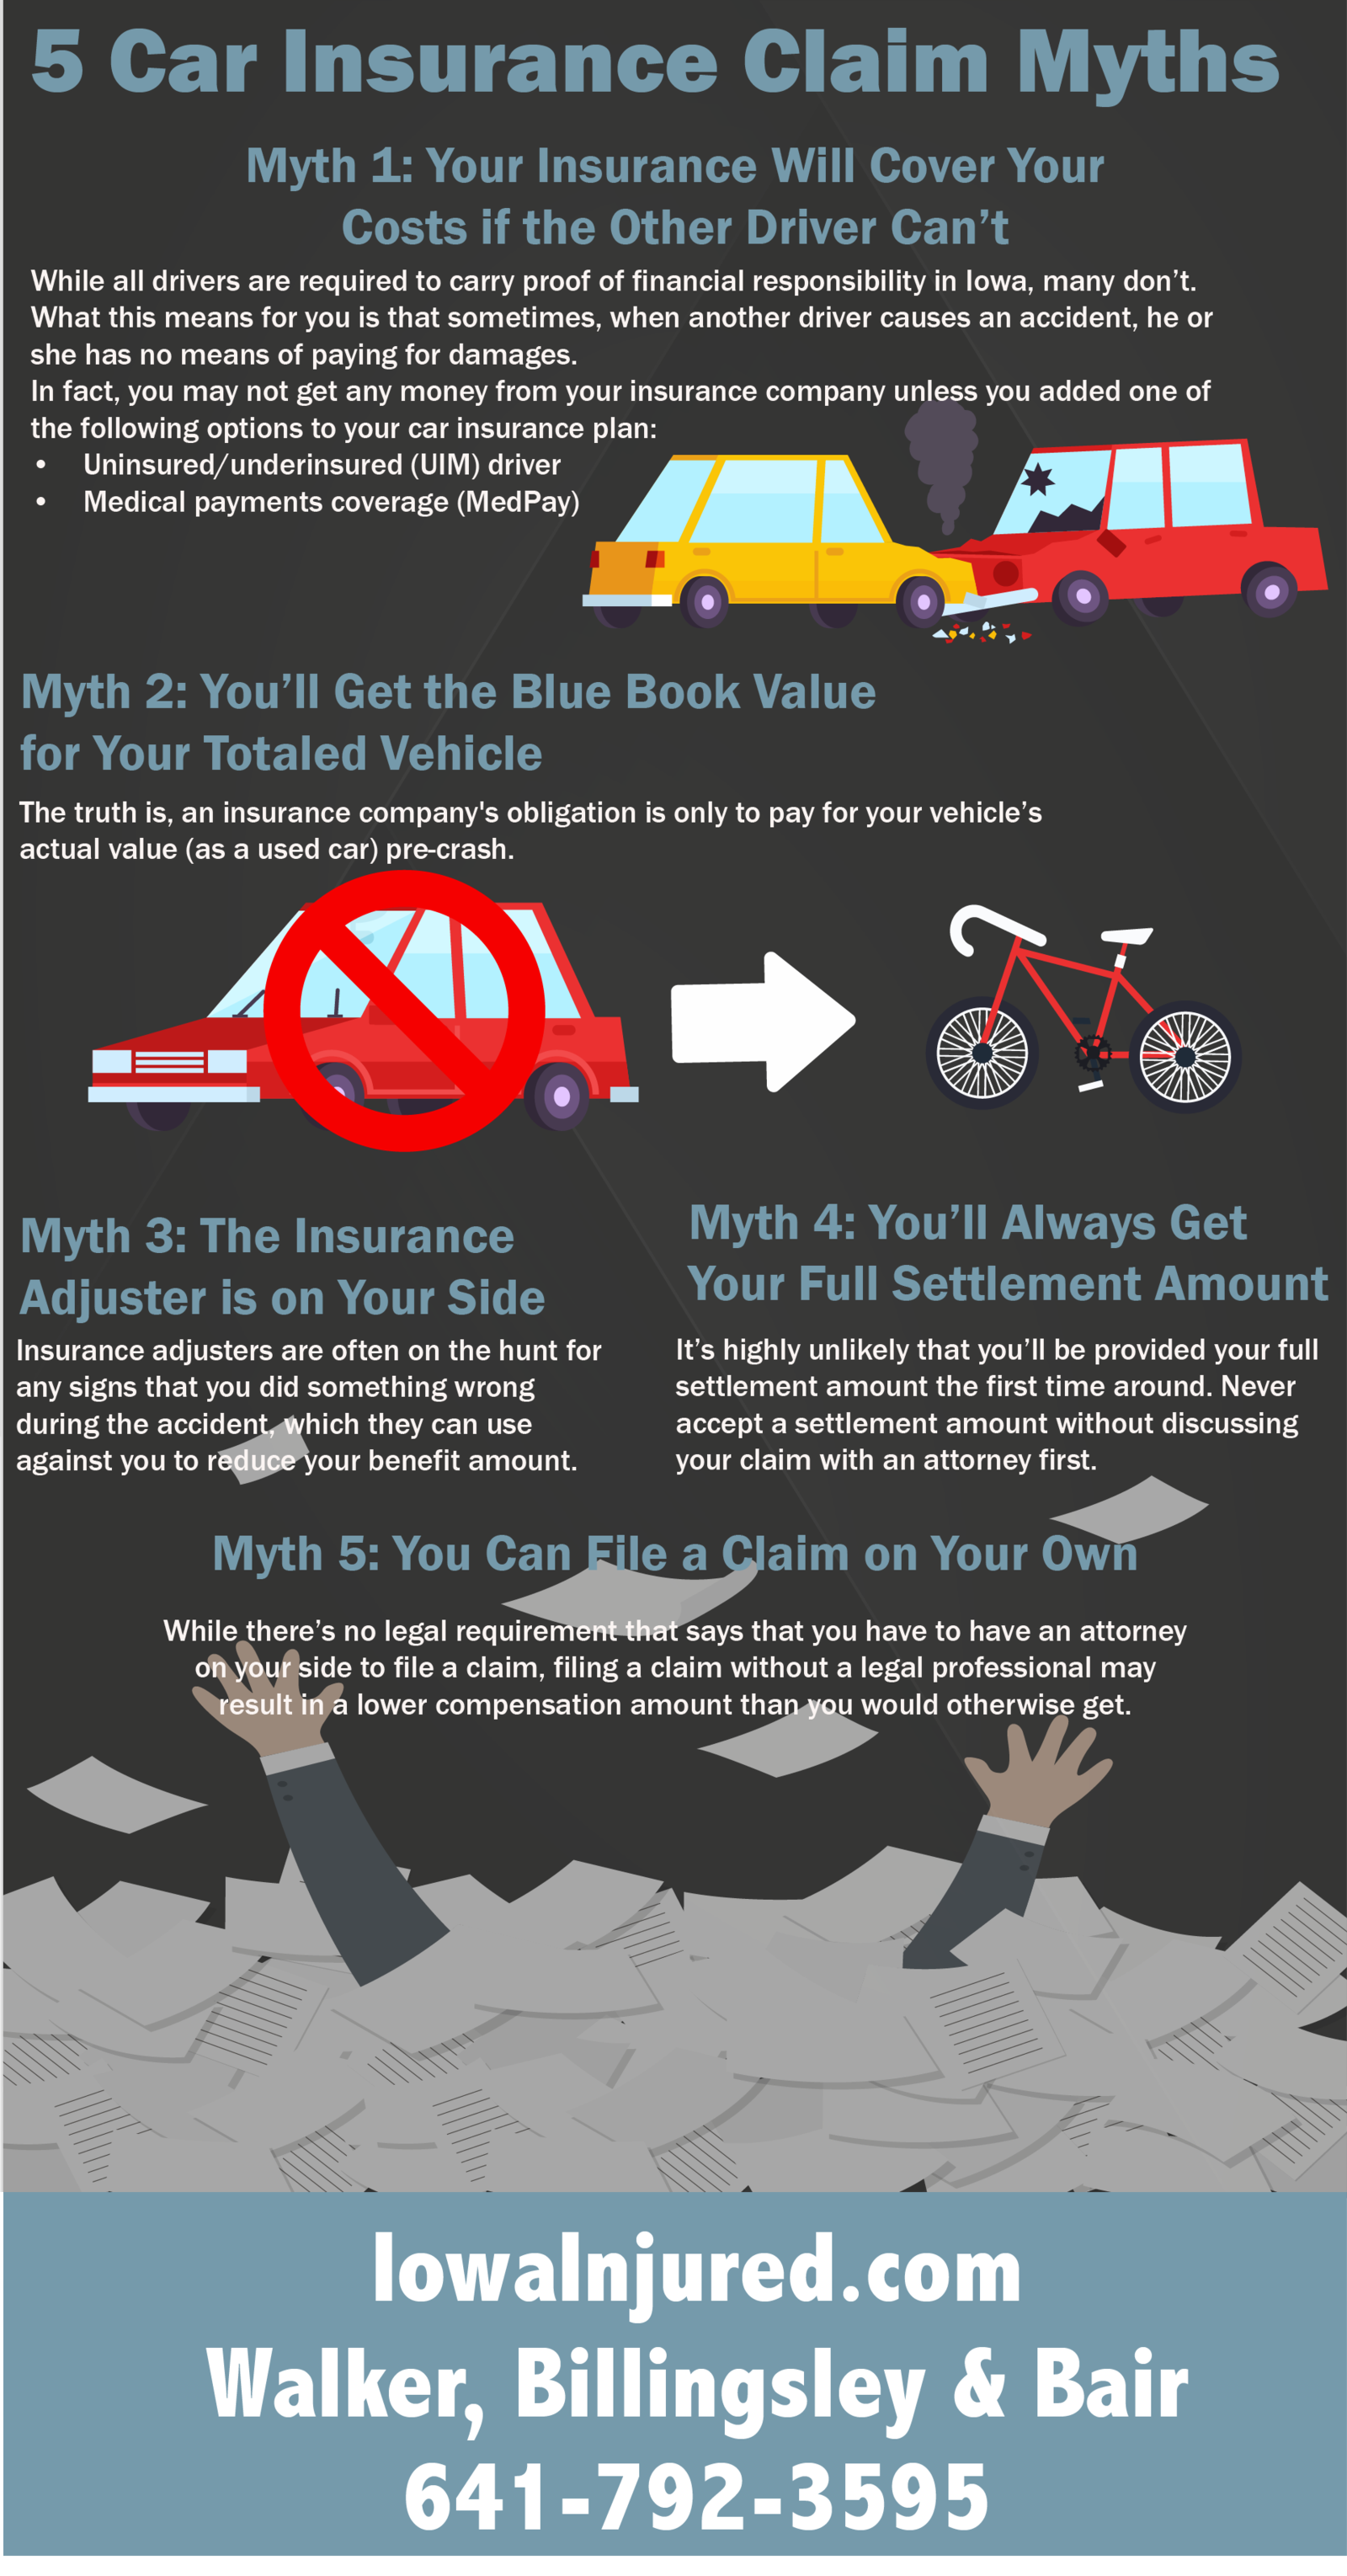 5 Car Insurance Claim Myths in Iowa